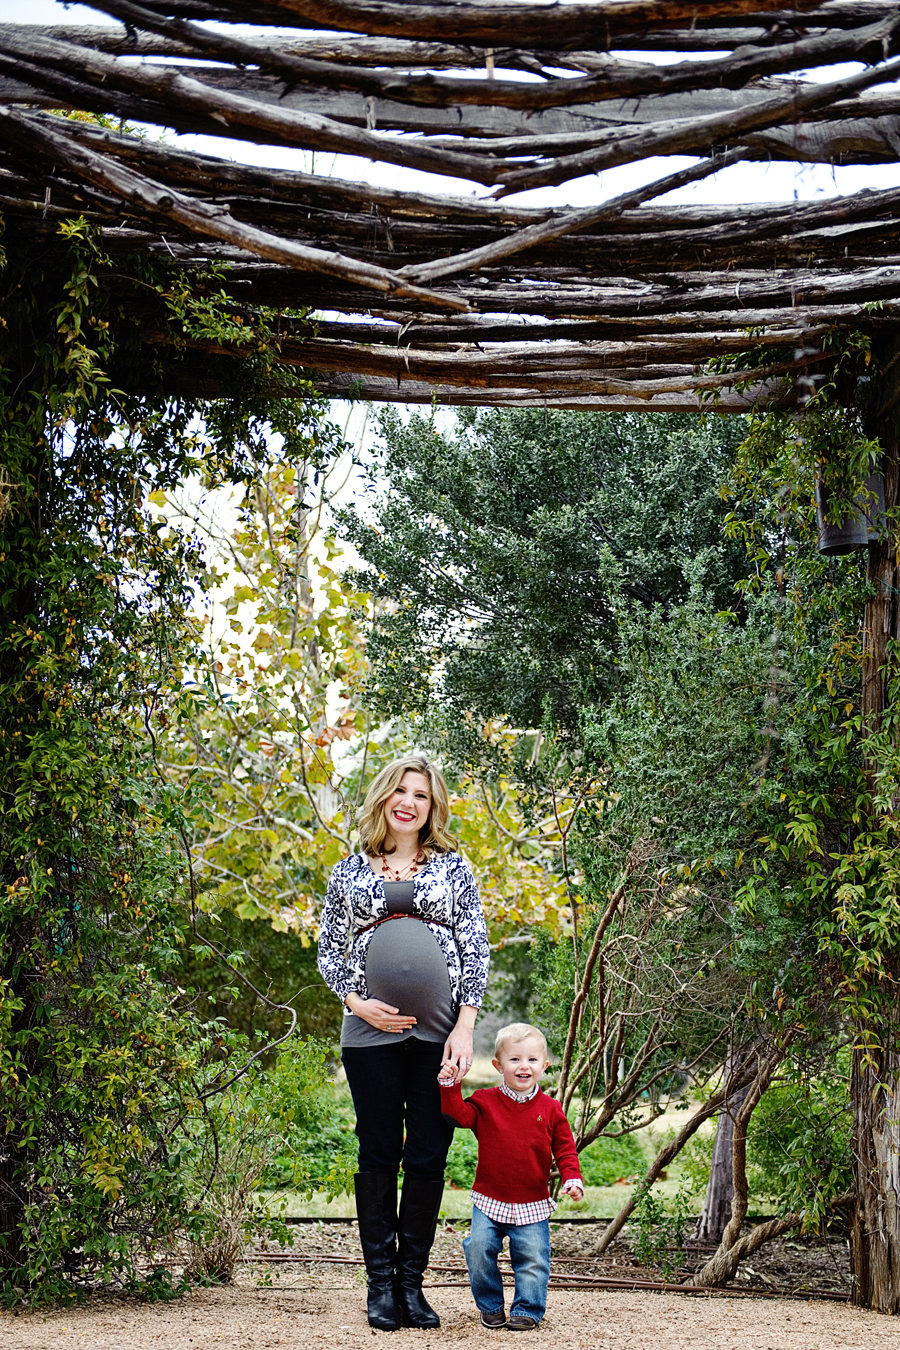 austin_pregnancy_maternity_photography36.jpg